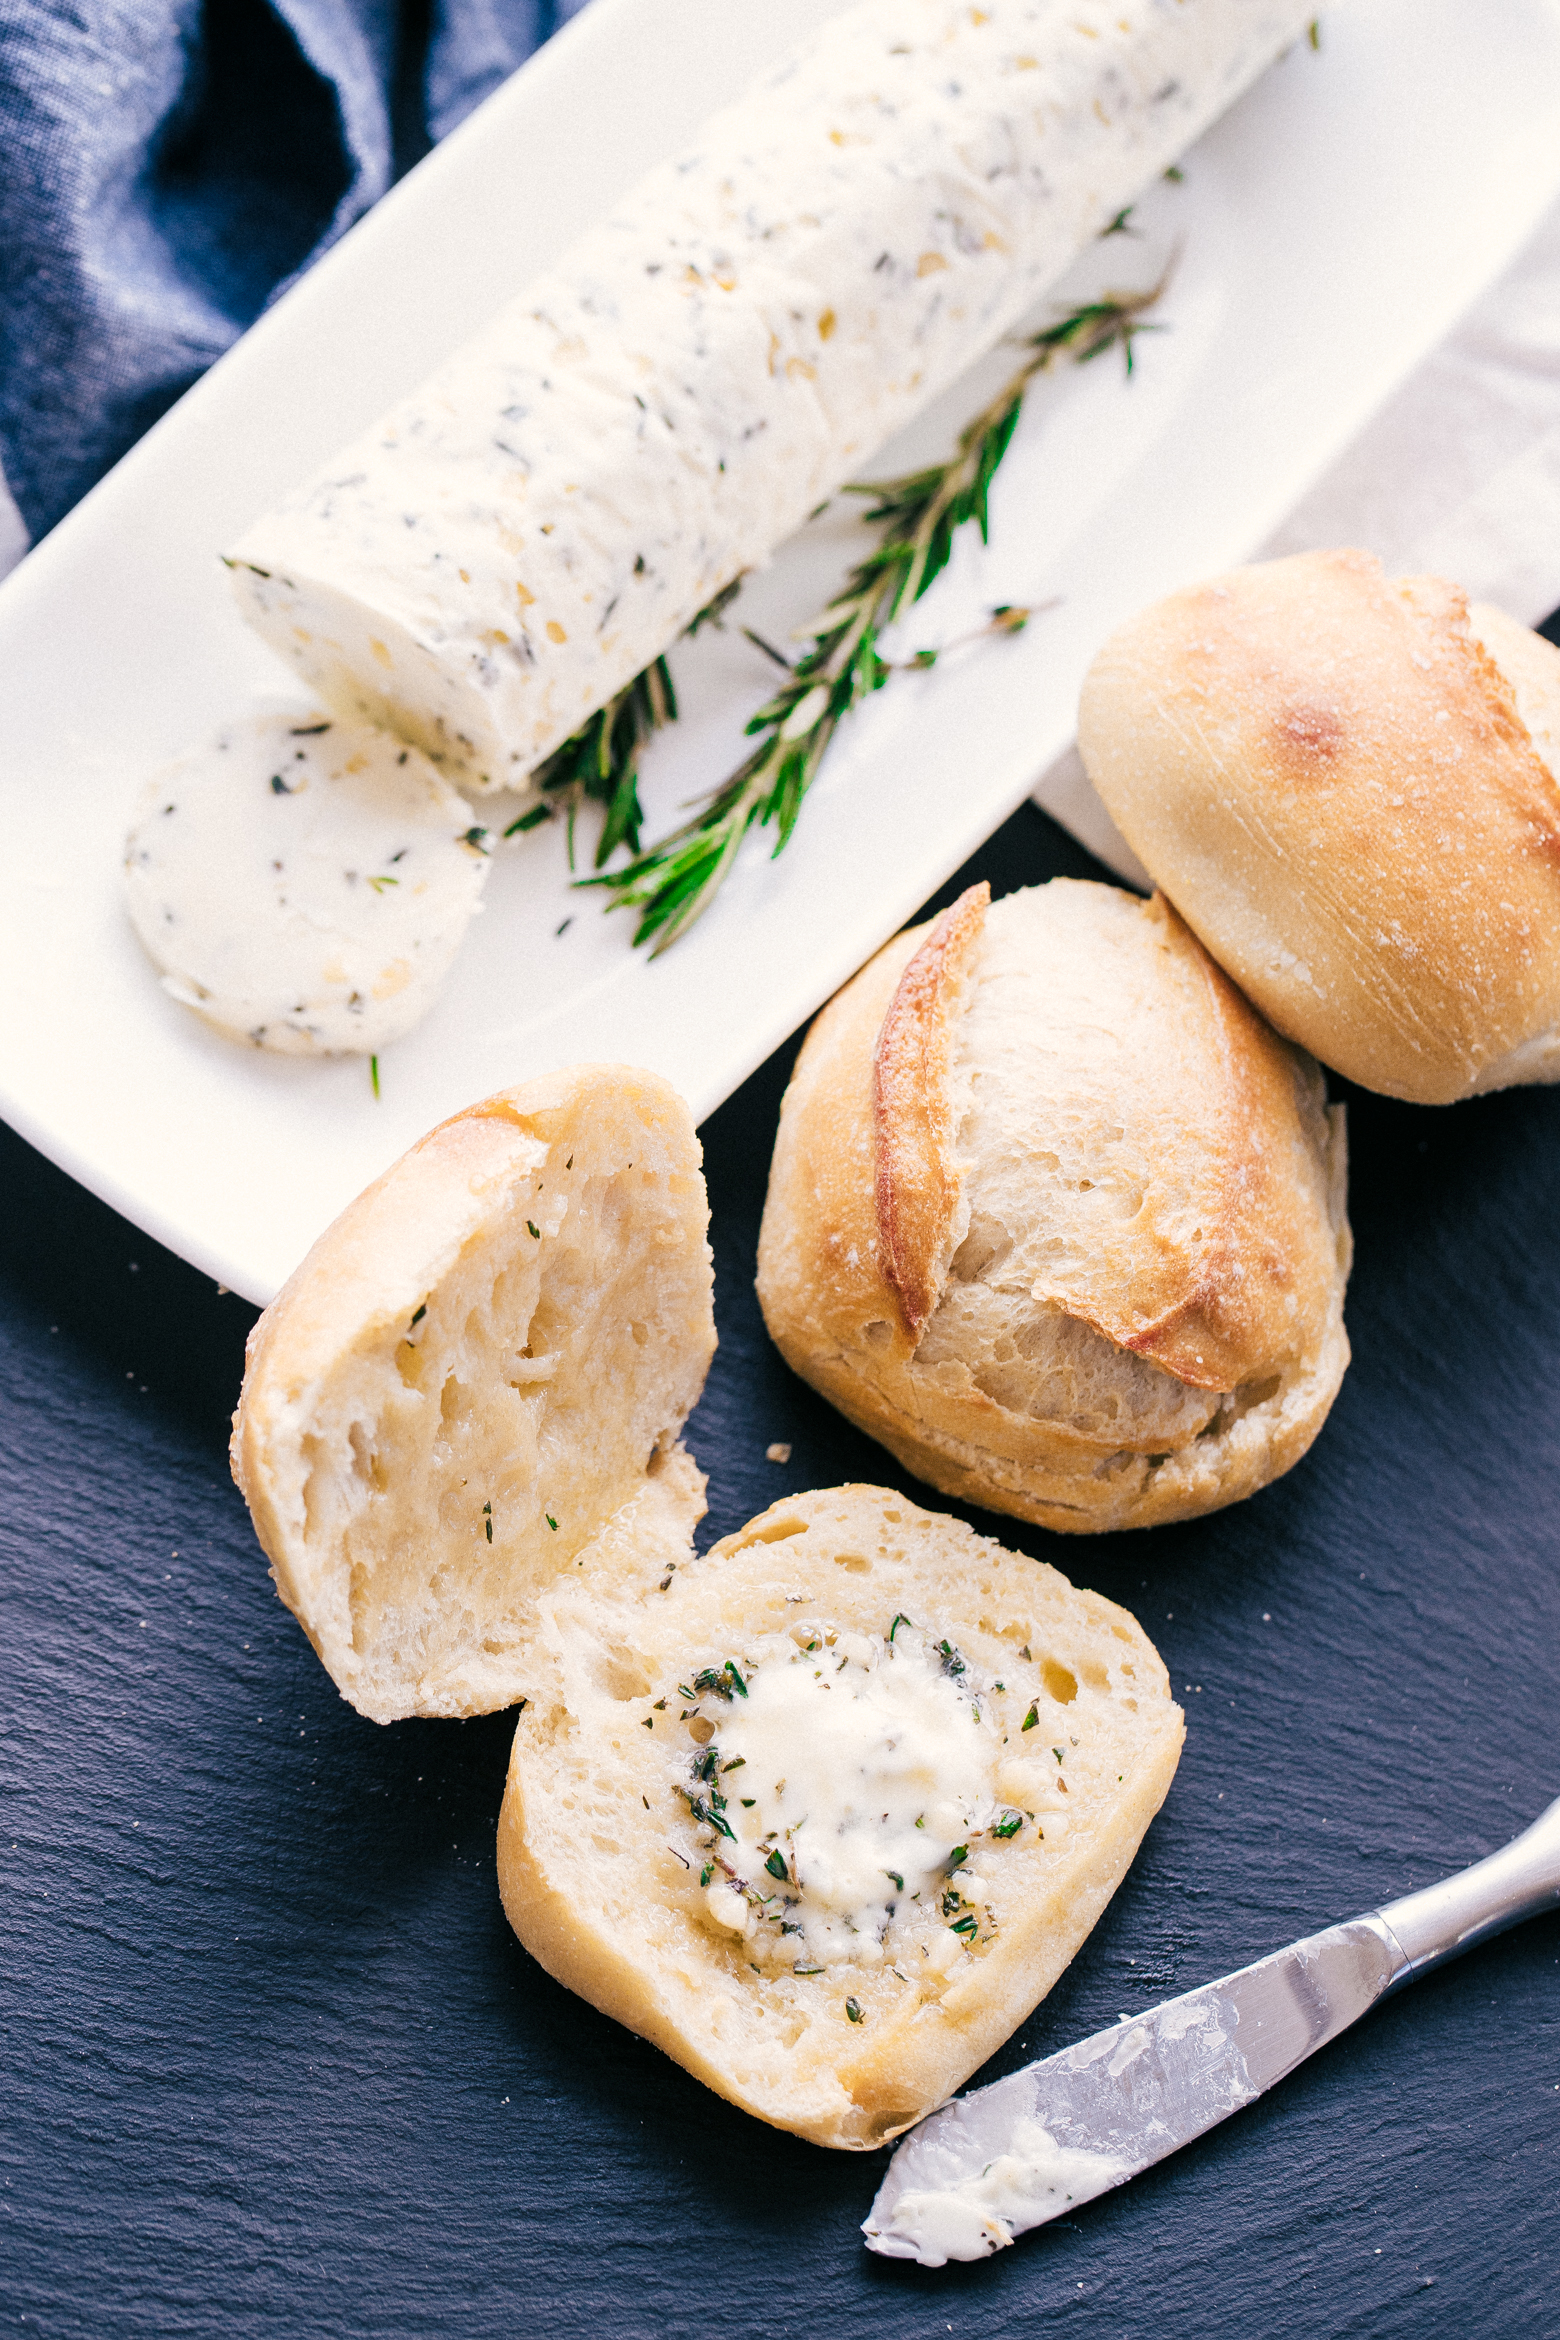 compound butter on a white plate with a slice cut off resting on plate.  Three rolls on dark background next to compound butter one cut open with herb compound butter spread on it.